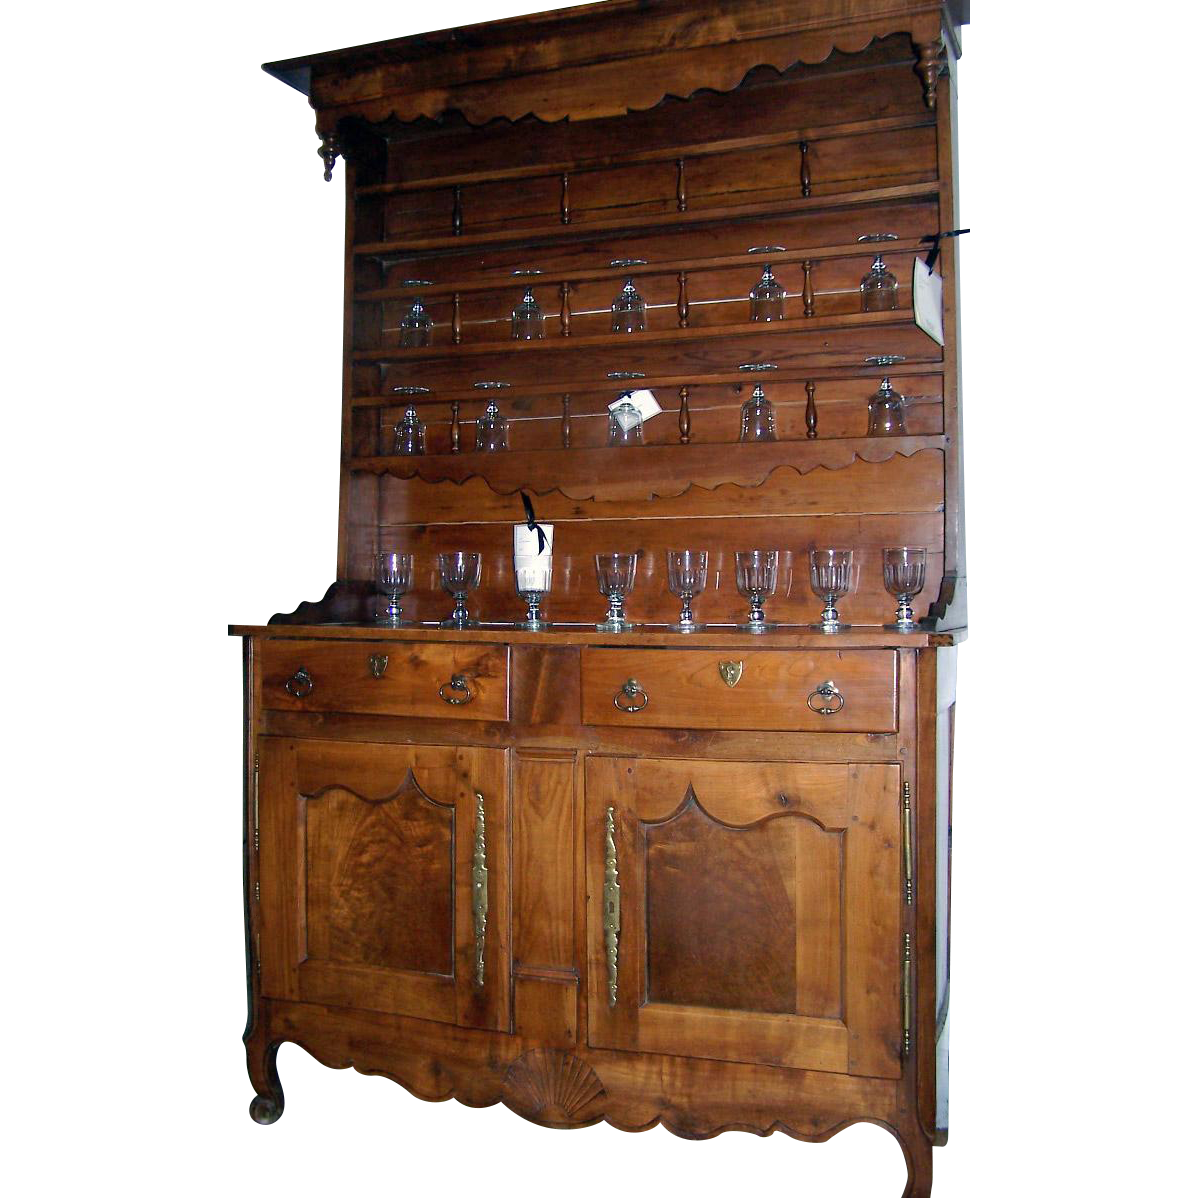 french elm vaisselier cupboard dresser cabinet 19th century from blacktulip on ruby lane. Black Bedroom Furniture Sets. Home Design Ideas